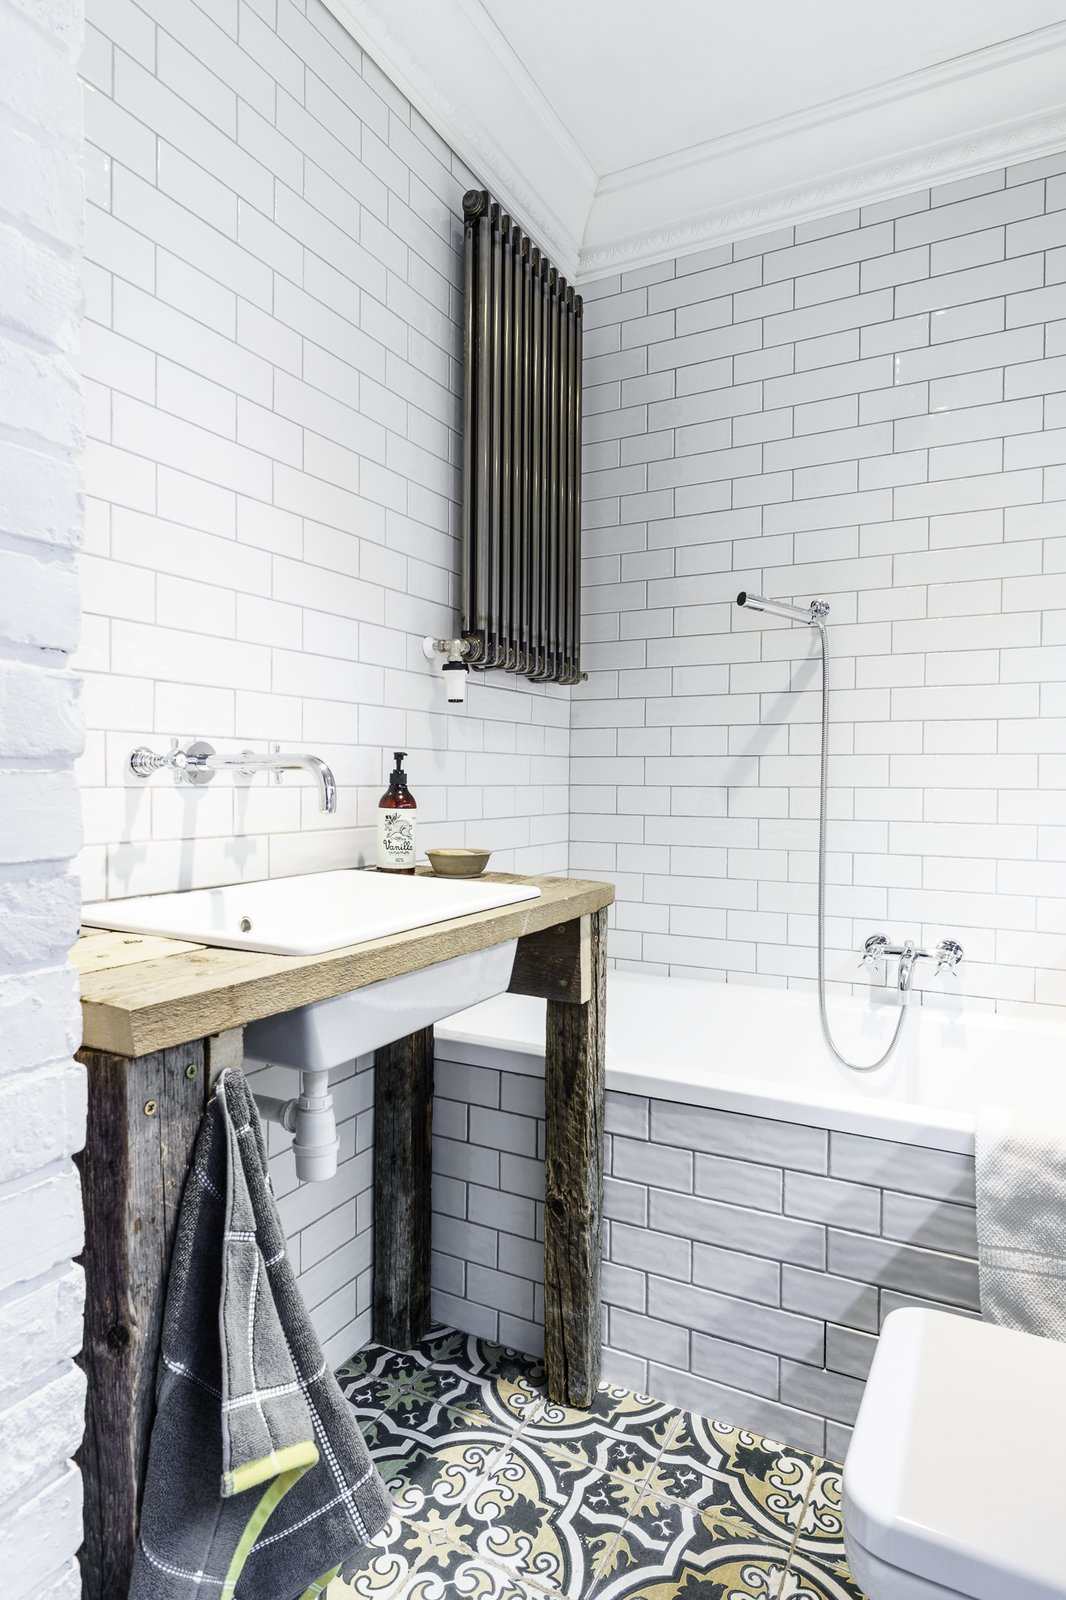 Bath Room, Pedestal Sink, Soaking Tub, Wood Counter, Drop In Sink, Subway Tile Wall, and Ceramic Tile Wall  Loft in Poland